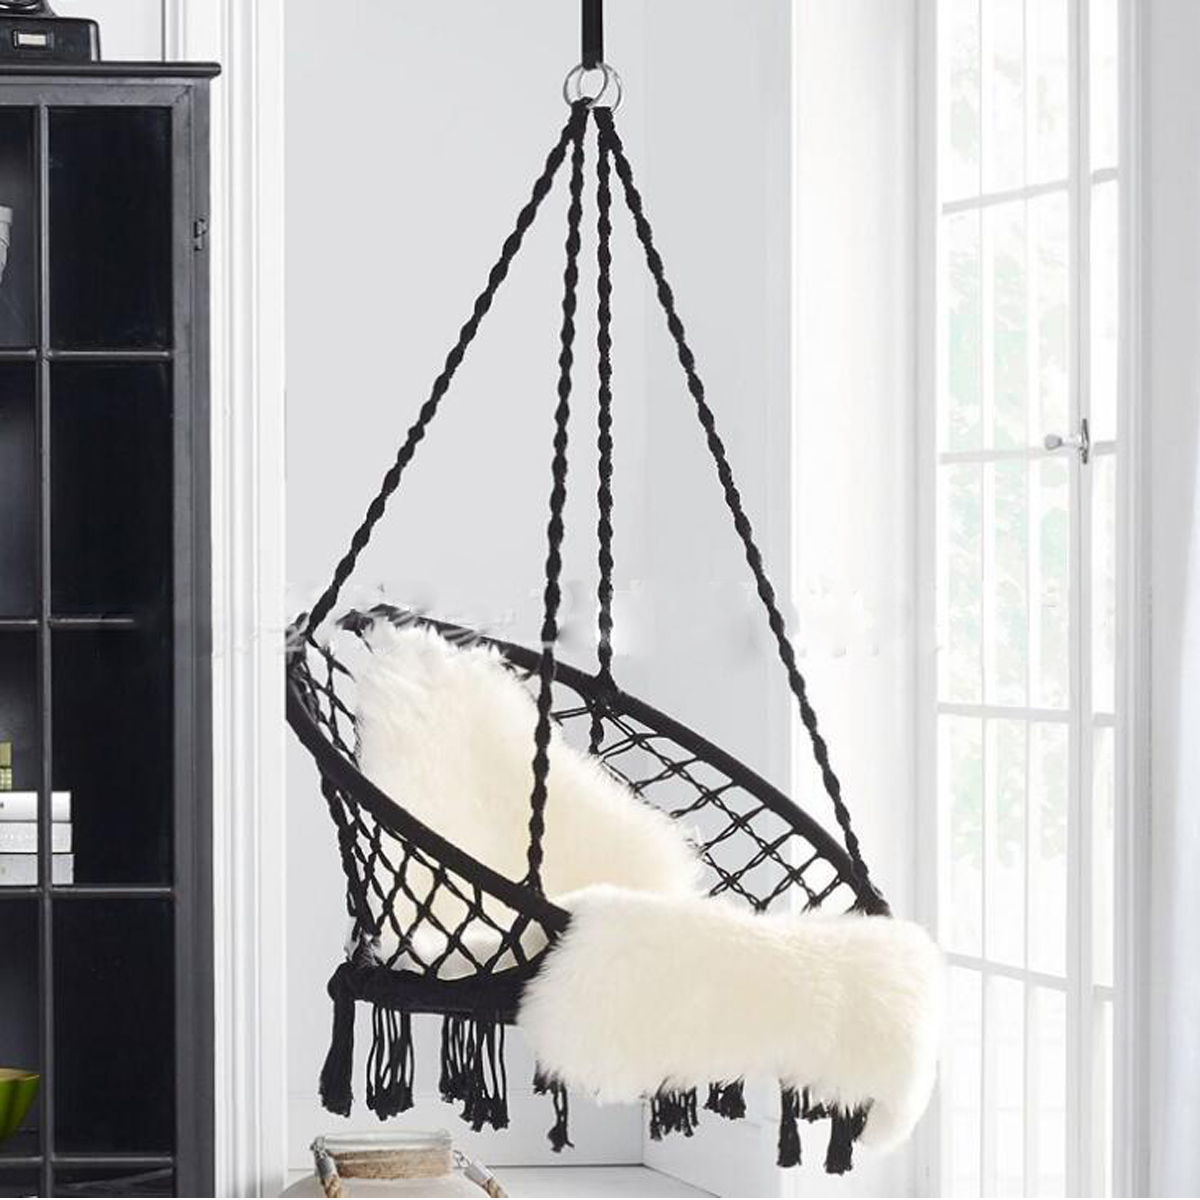 Nordic Style Round Hammock Outdoor Indoor Dormitory Bedroom For Child Adult Swinging Hanging Single Safety Chair Hammock цены